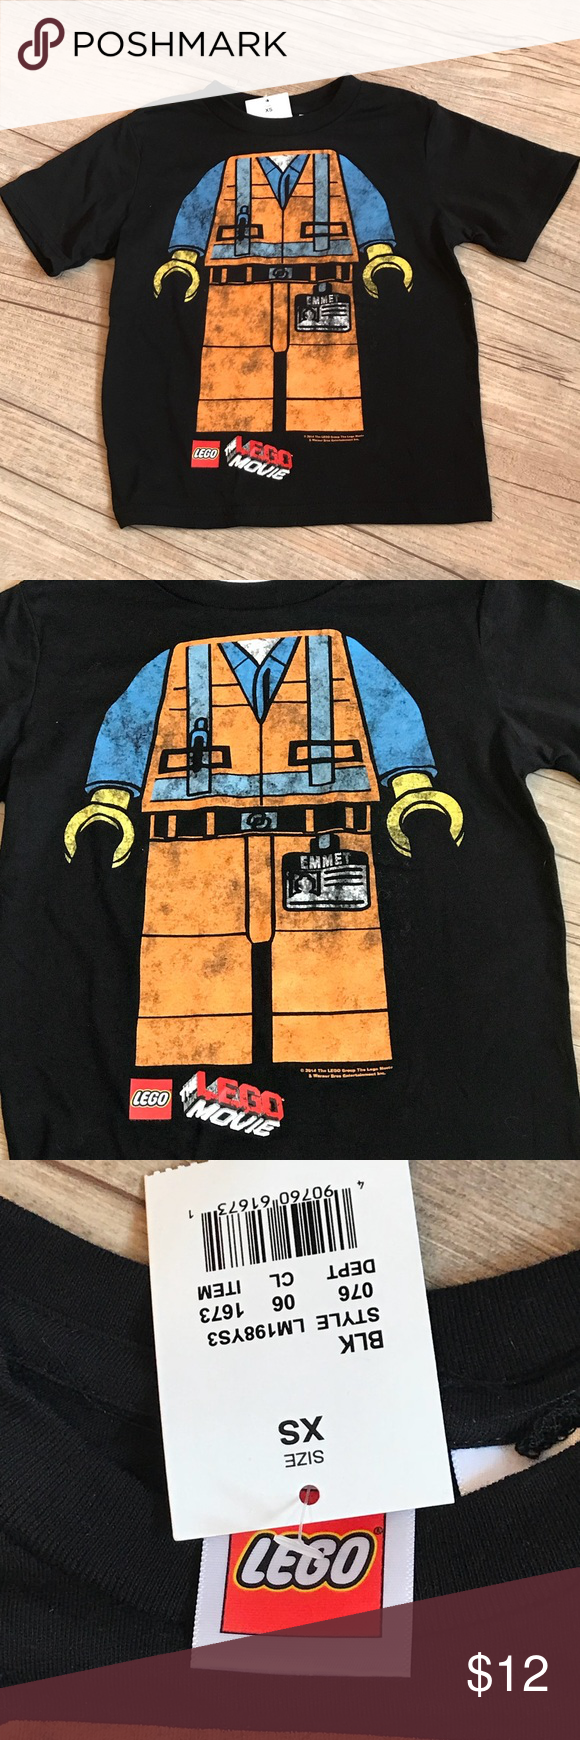 Nwt Lego Movie Shirt My Posh Picks Pinterest Short Sleeve Tee Brand Size Xs 4 New With Tags